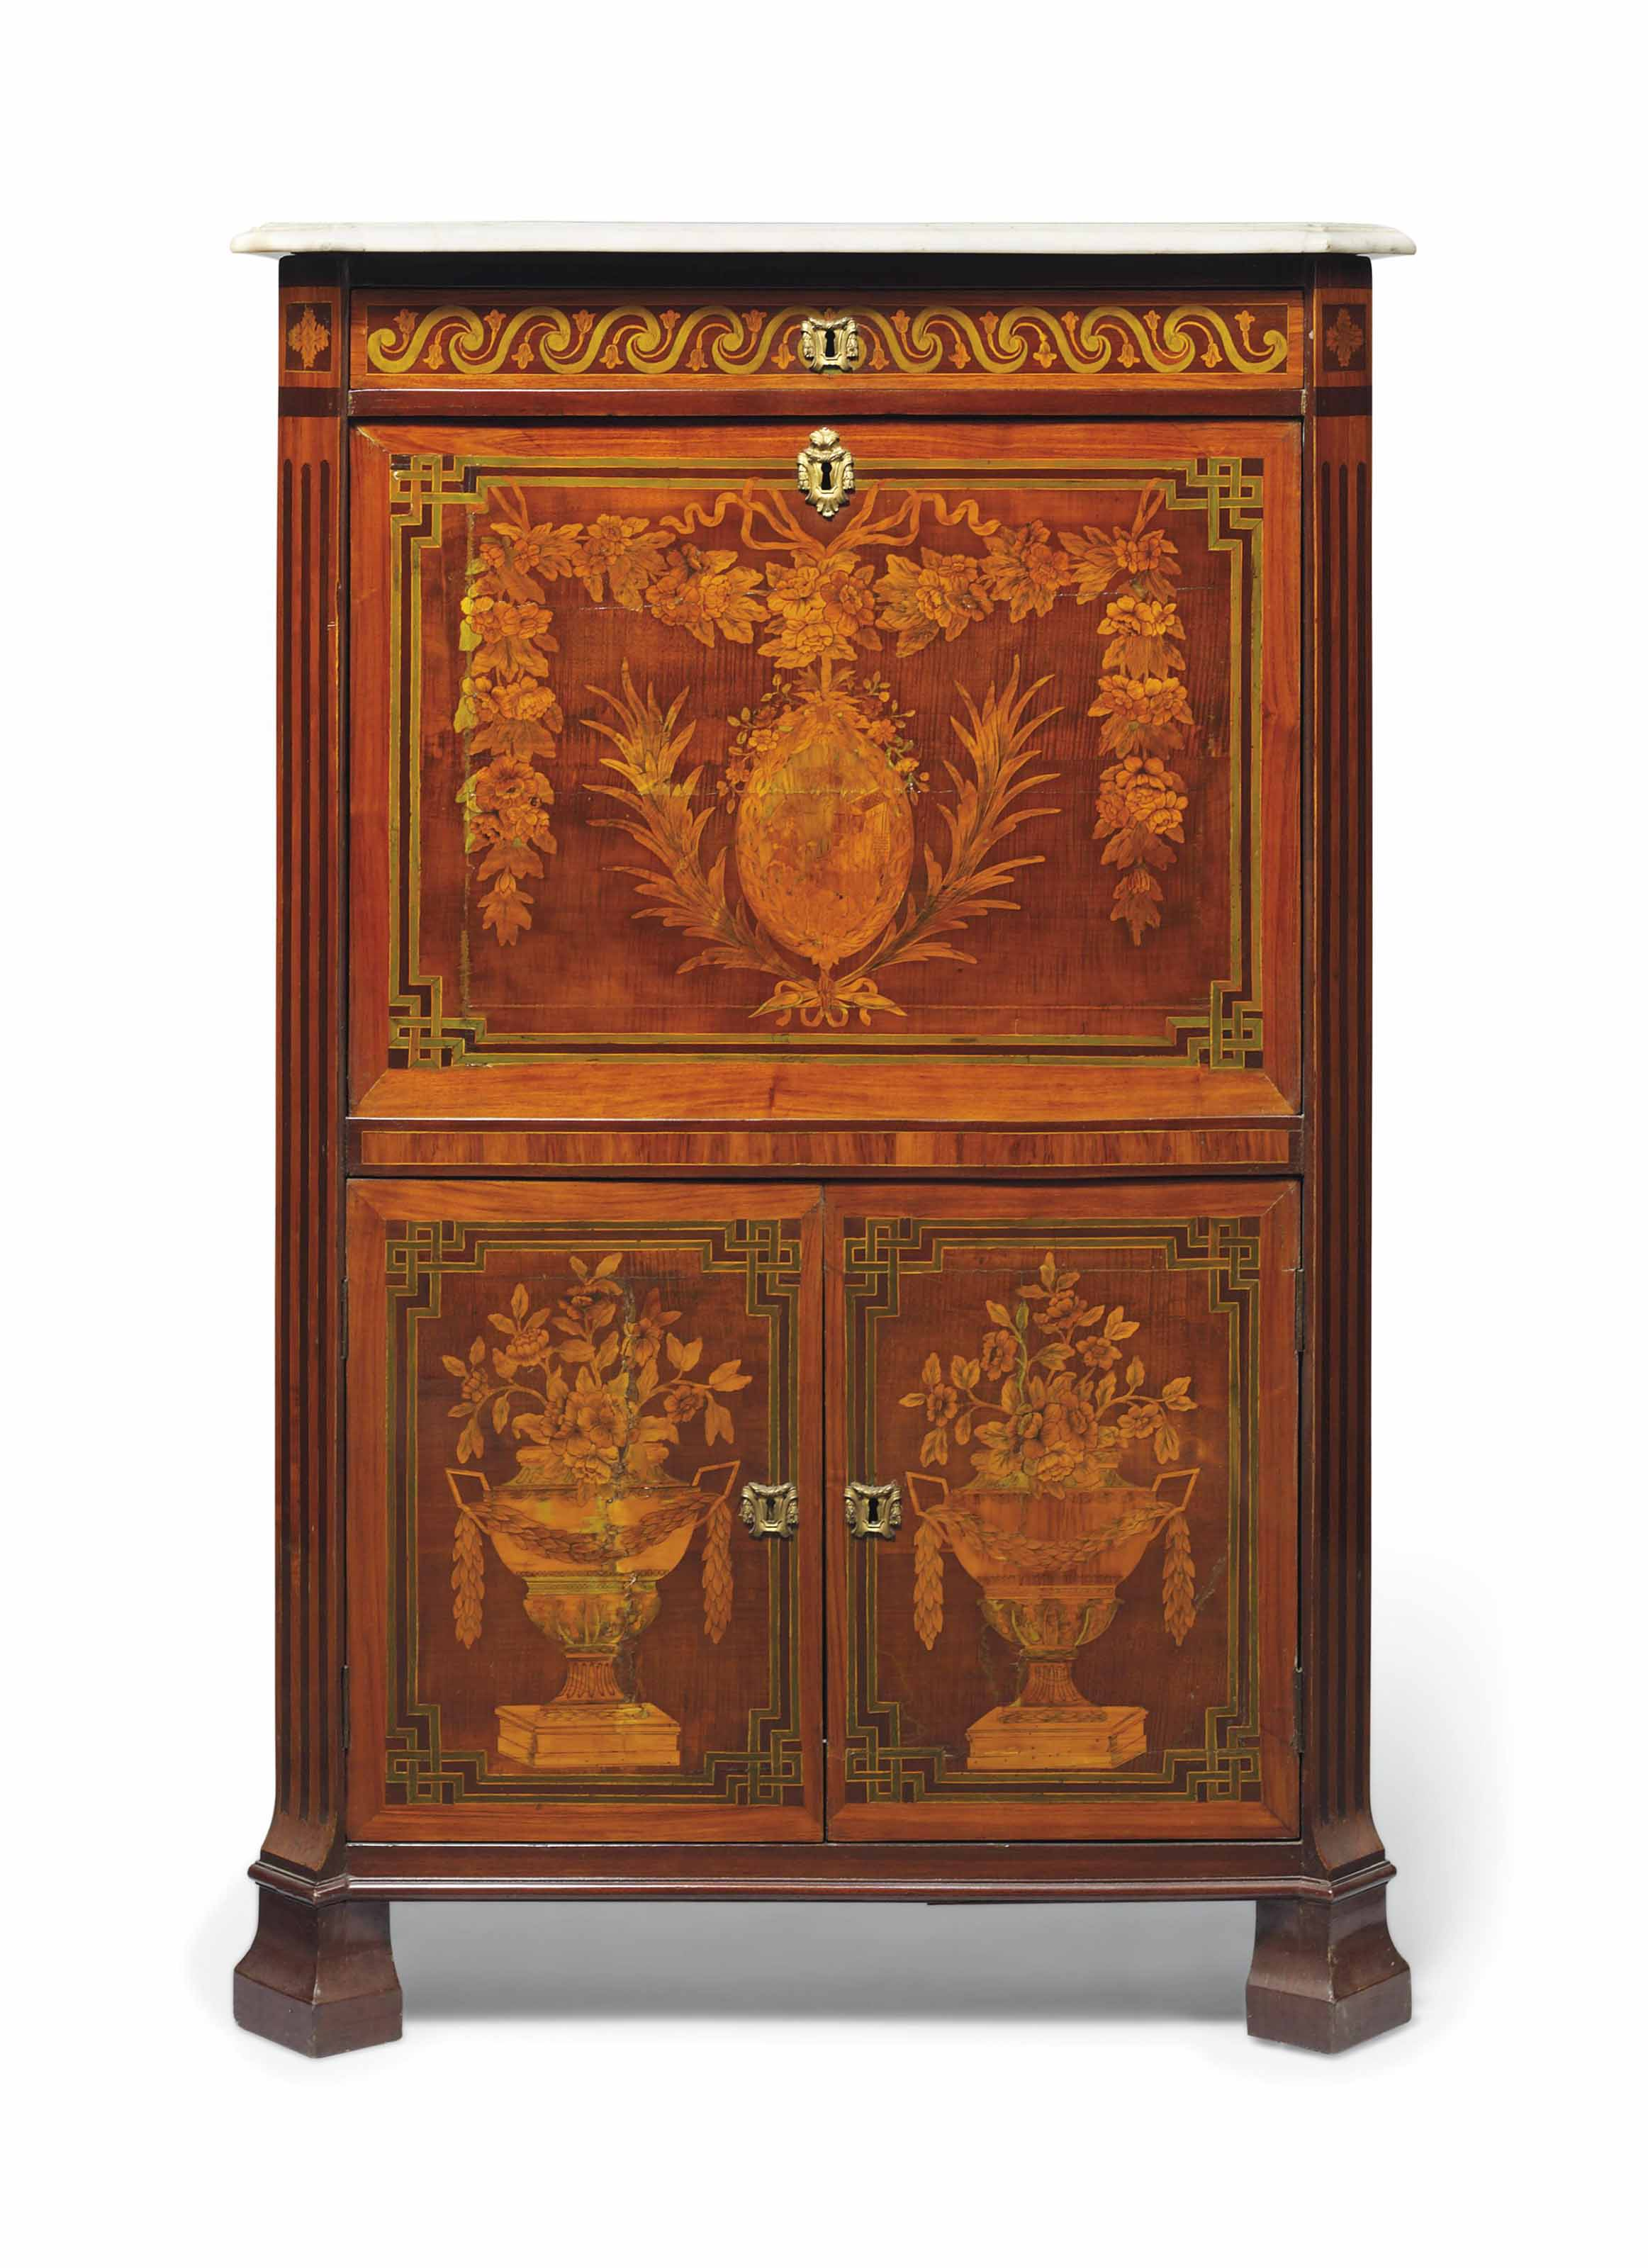 A LOUIS XVI ORMOLU-MOUNTED TULIPWOOD AND MARQUETRY SECRETAIRE A ABBATANT